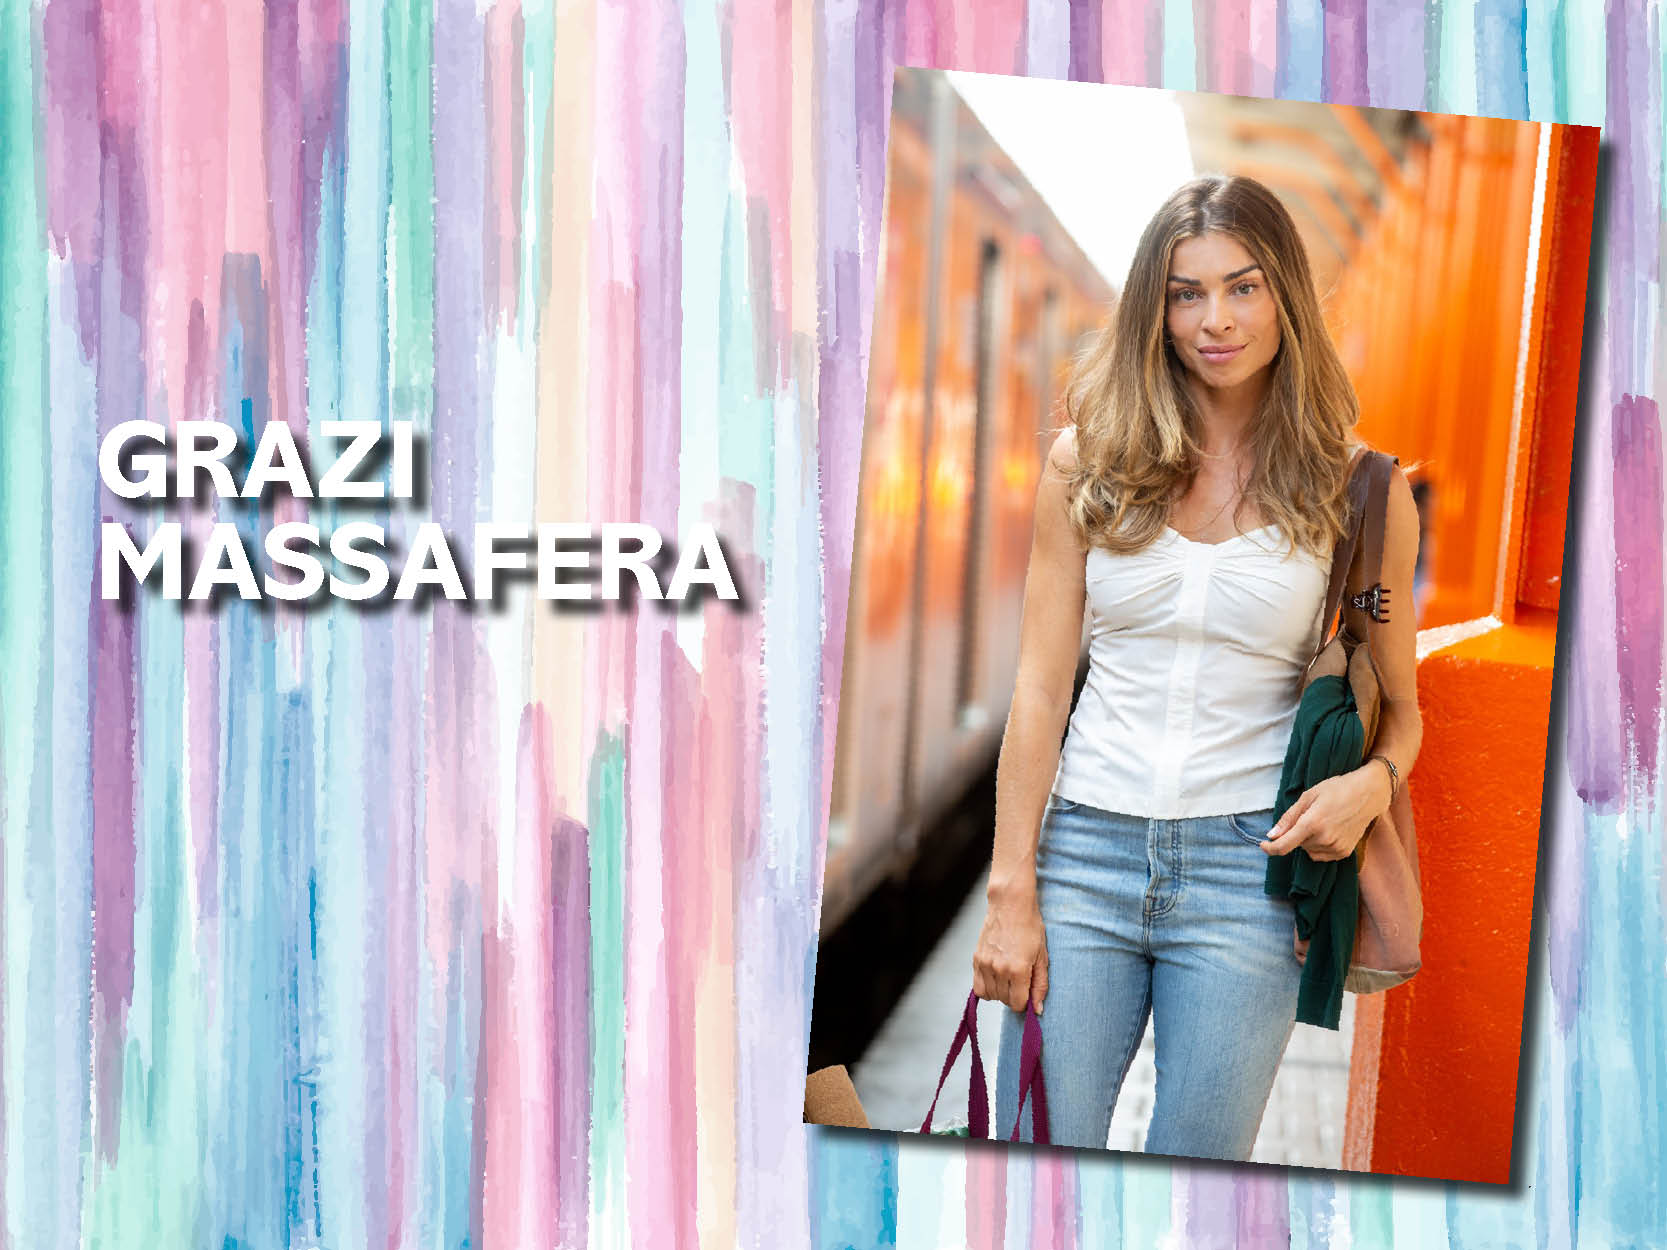 Grazi Massafera – Hair countour com suave movimento